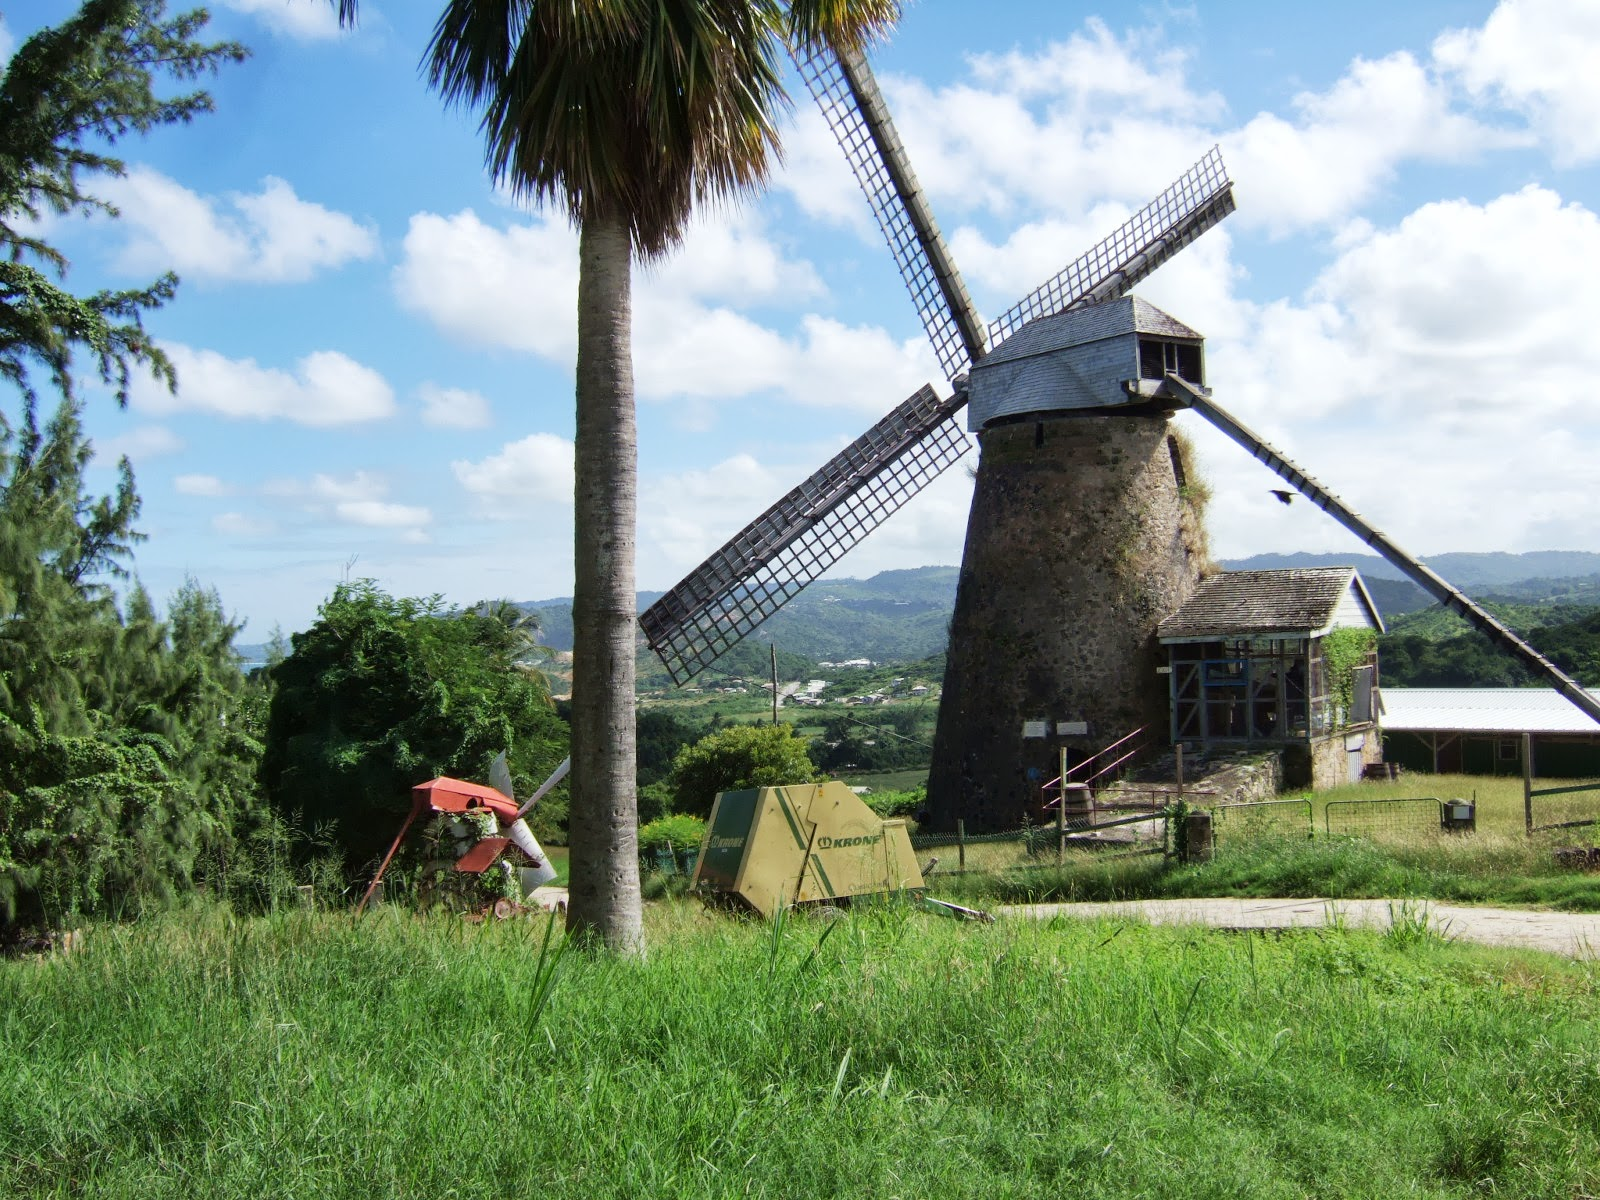 A windmill in one of the villages we passed through